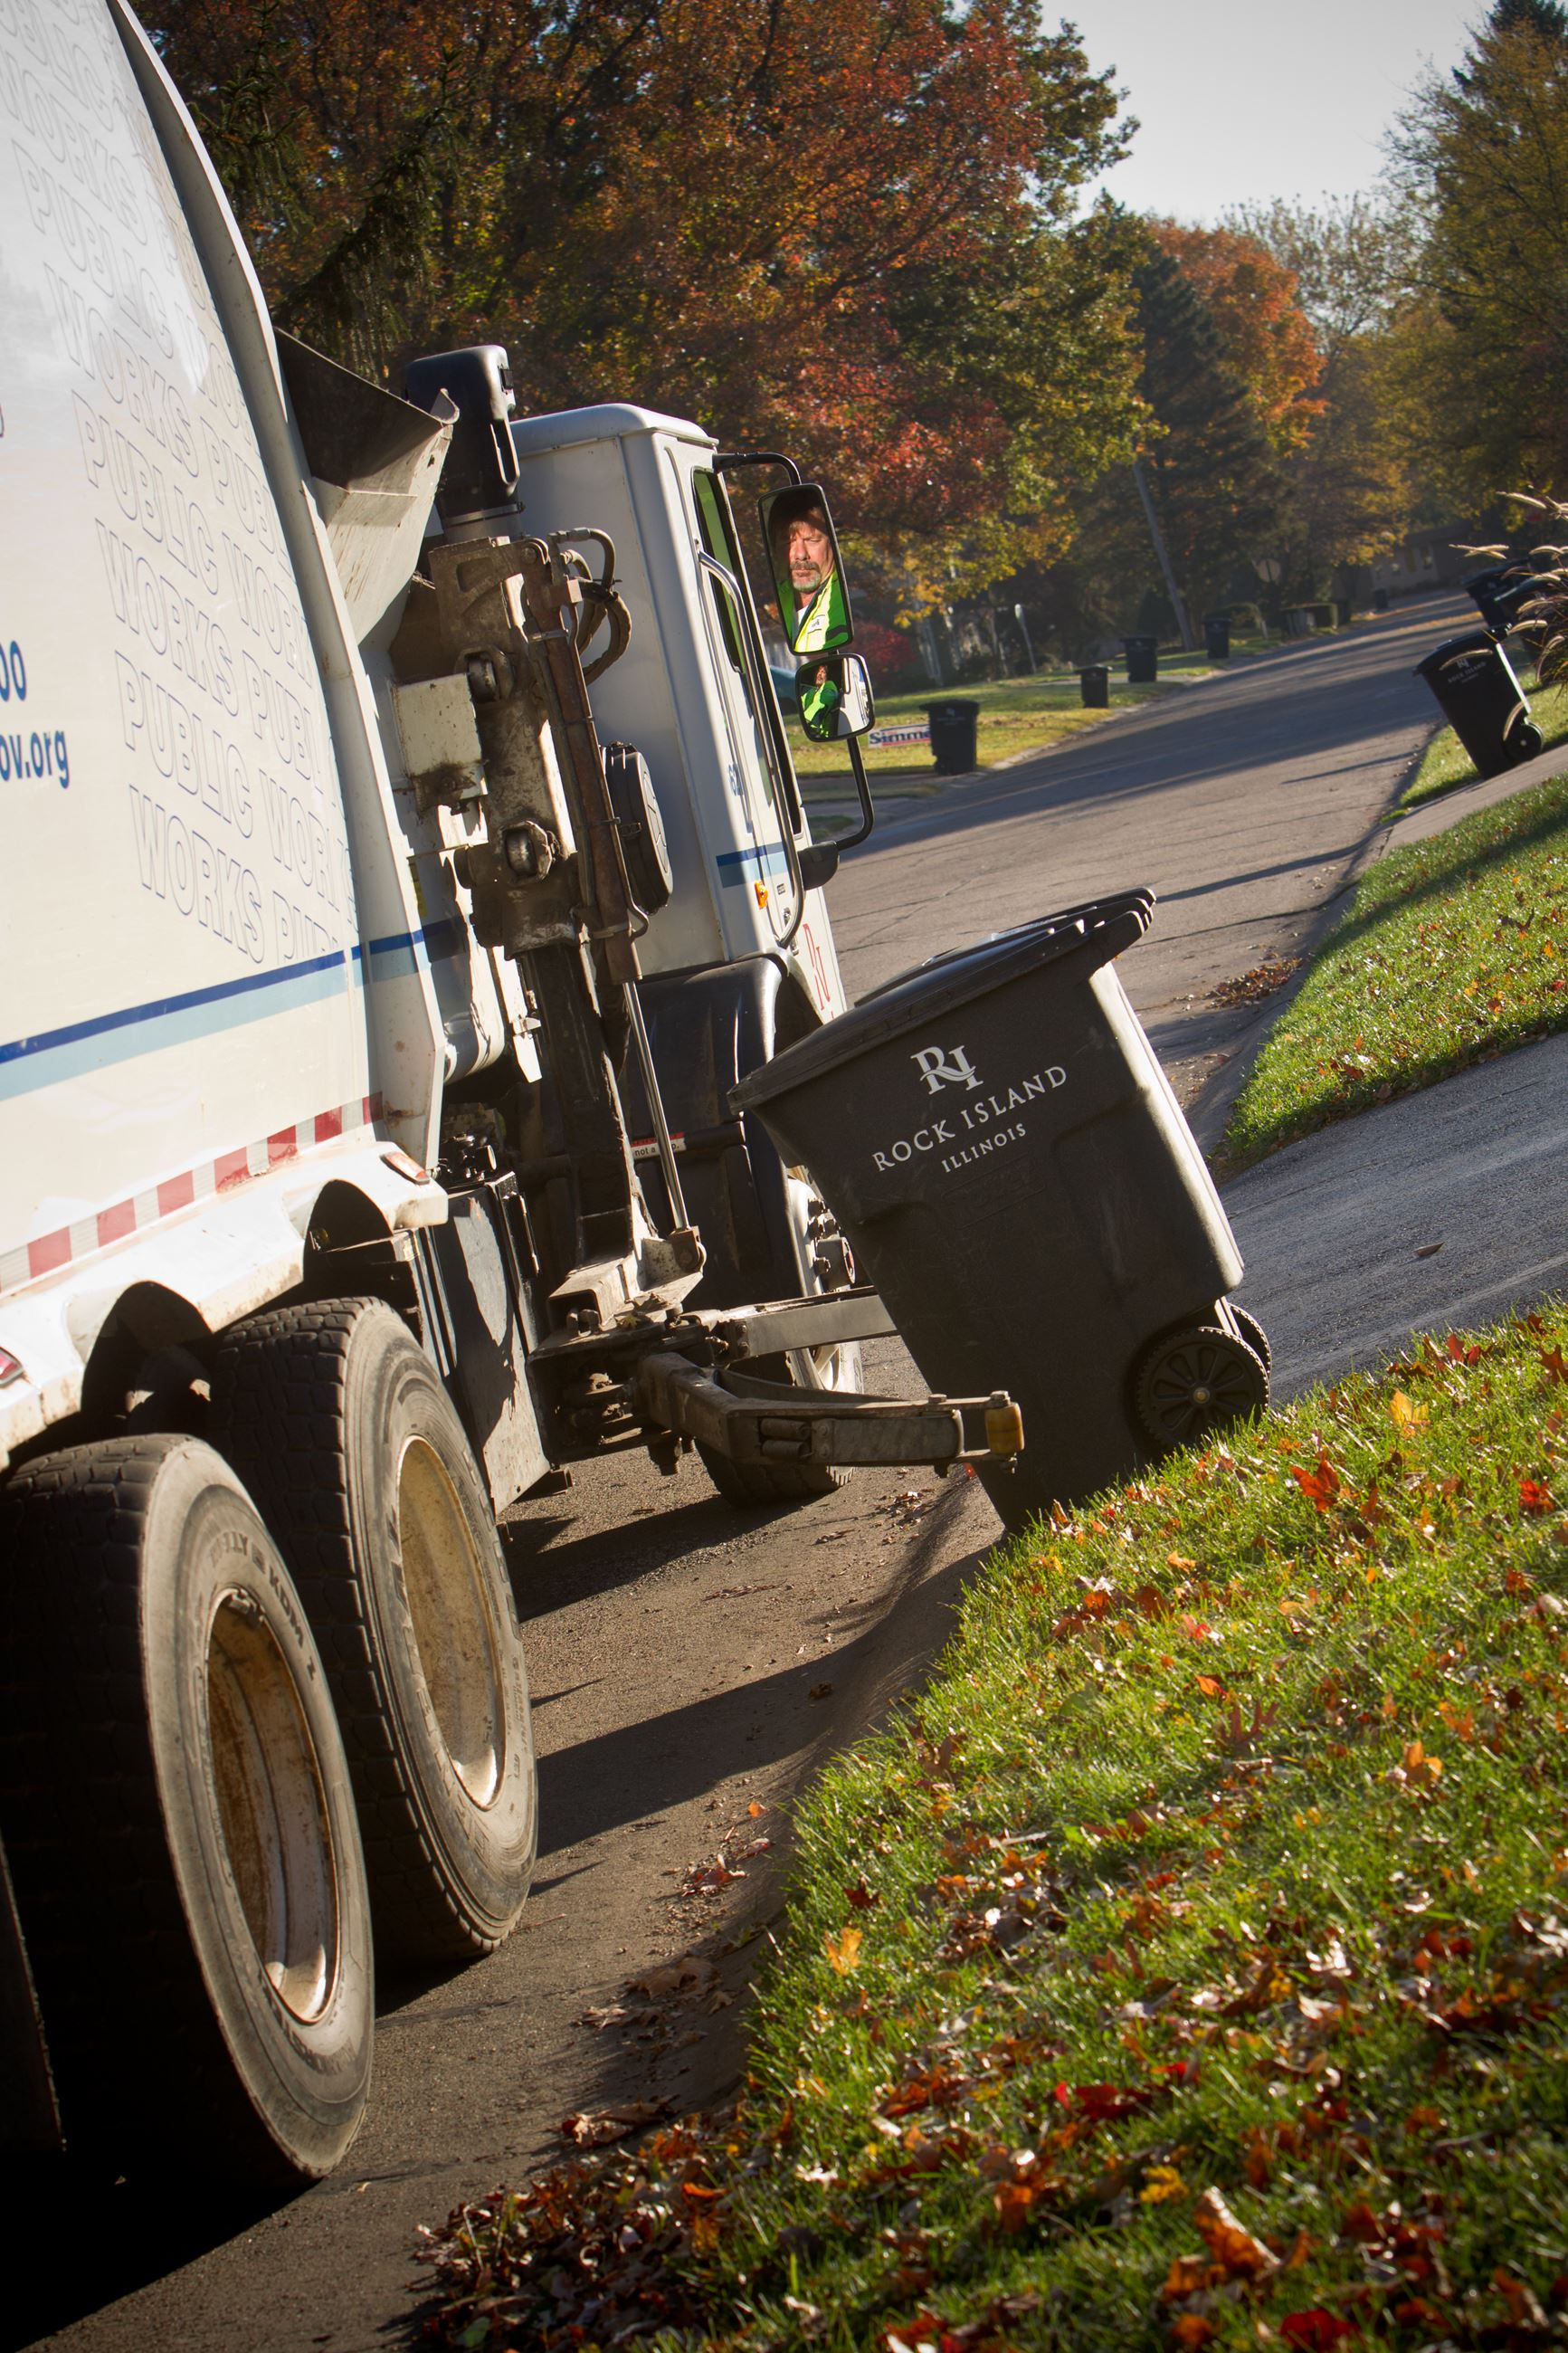 Refuse truck and cart in neighborhood